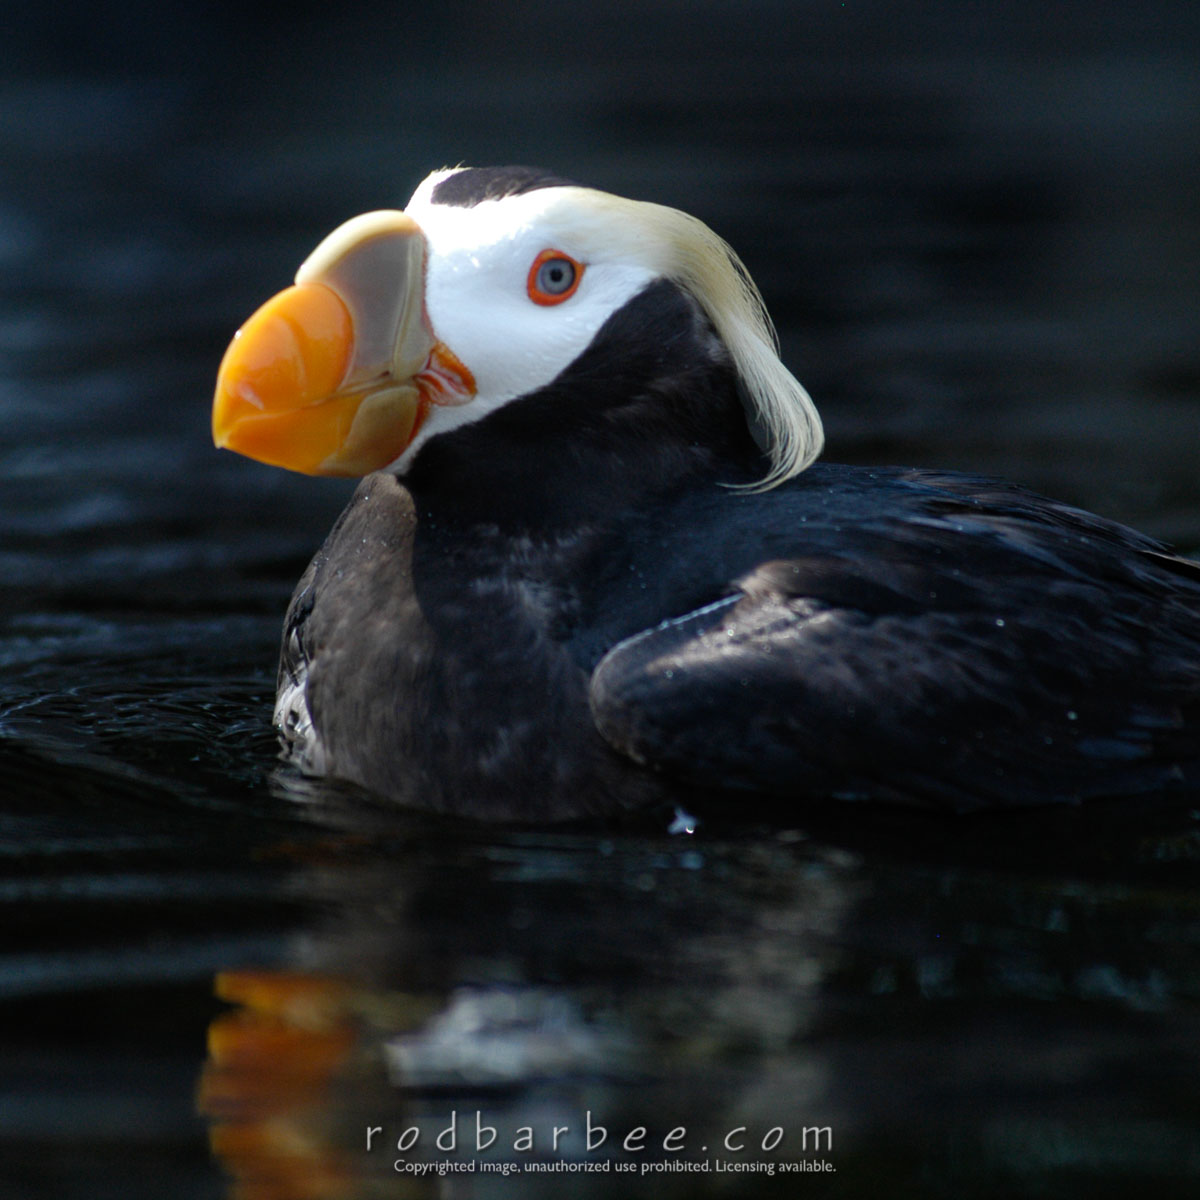 Barbee_030903_1_7711 |  Tufted Puffin